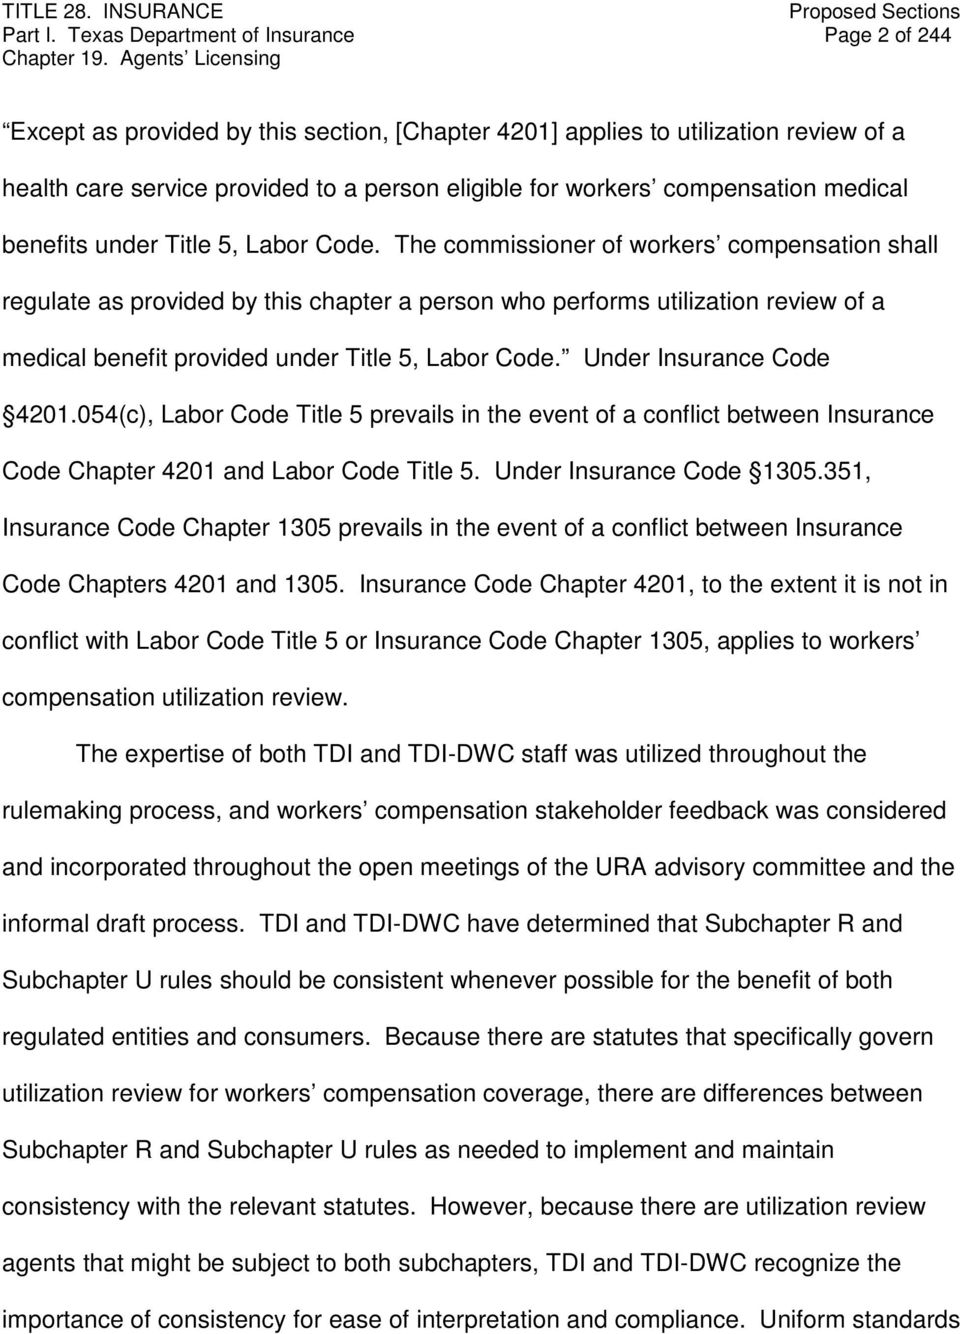 compensation medical benefits under Title 5, Labor Code.